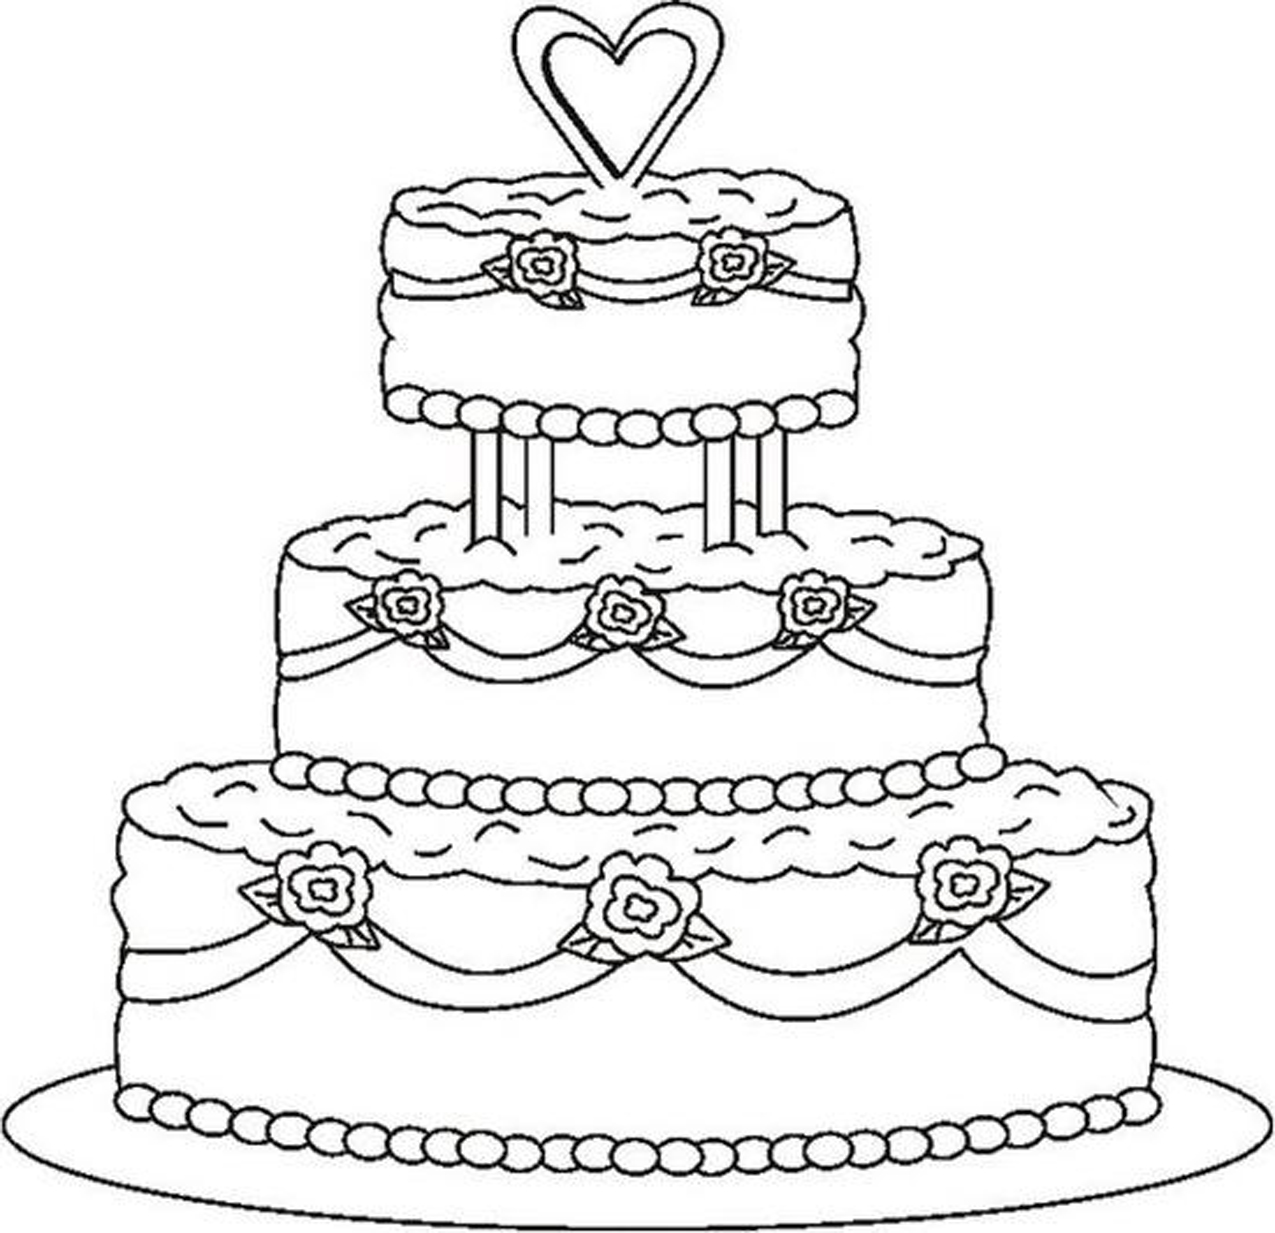 coloring pages for birthday cakes ; competitive-birthday-cake-coloring-pages-superior-coloring-page-of-a-birthday-cake-112